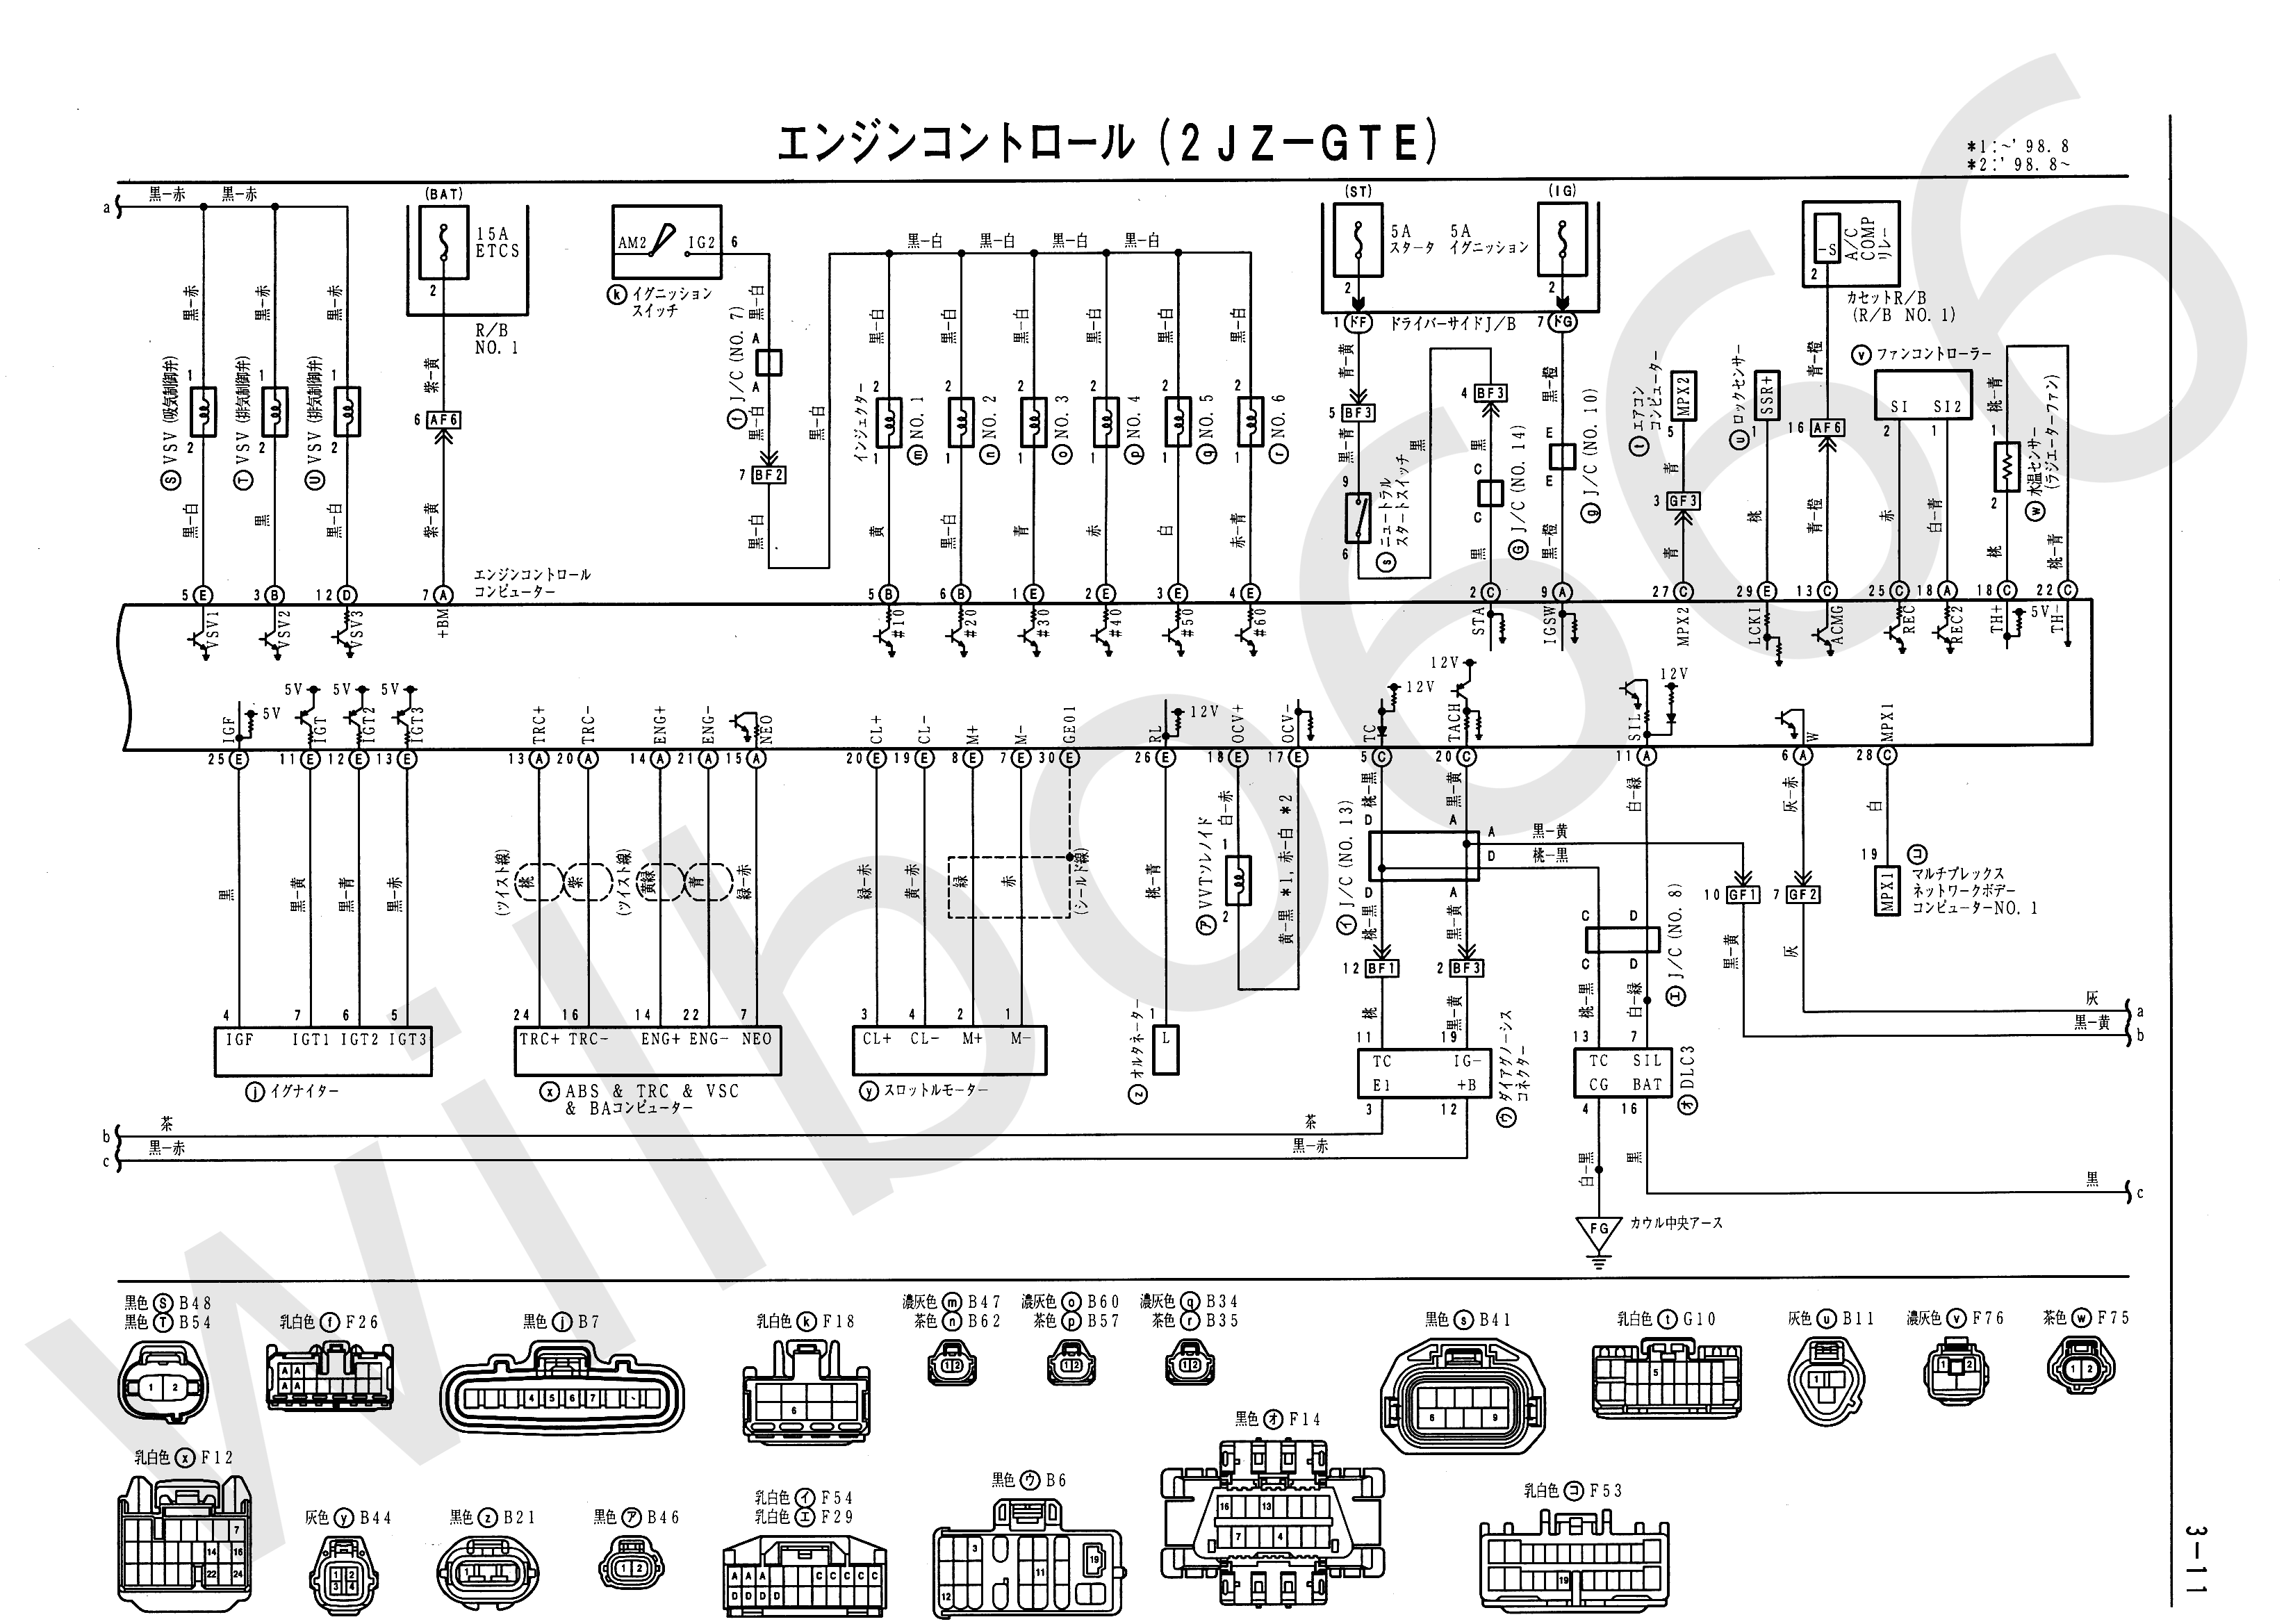 JZS161 Electrical Wiring Diagram 6748505 3 11 2jz wiring diagram 2jz wiring diagrams instruction  at nearapp.co